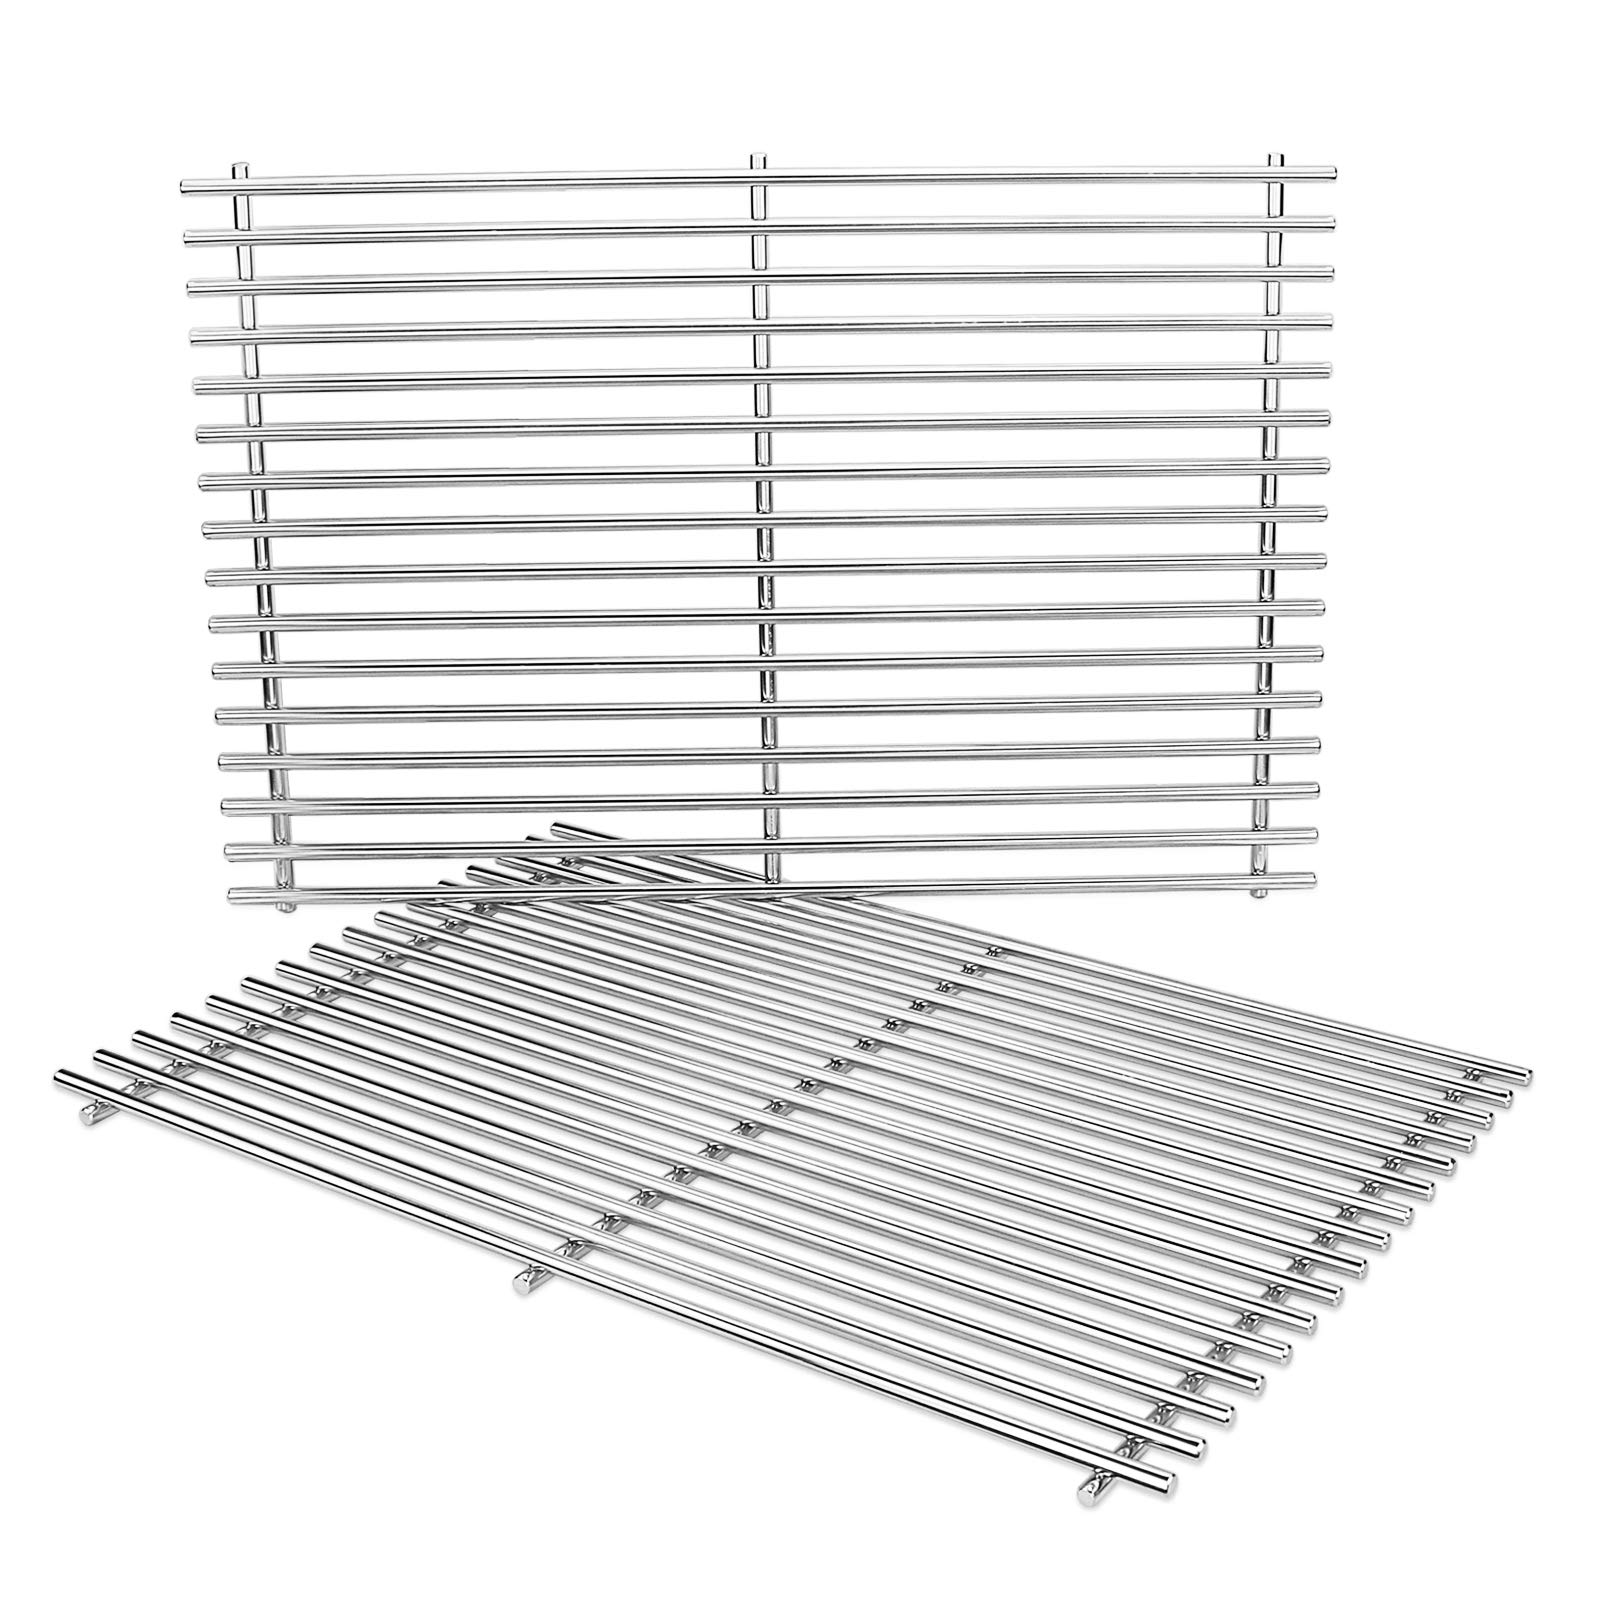 Grisun 17 3 Inch 7639 Cooking Grates For Weber Spirit 300 Series 304 Stainless Steel Grates For Spirit E310 E320 S310 S320 Spirit 700 Weber 900 Genesis Silver B Grill Grate Part 7638 65906